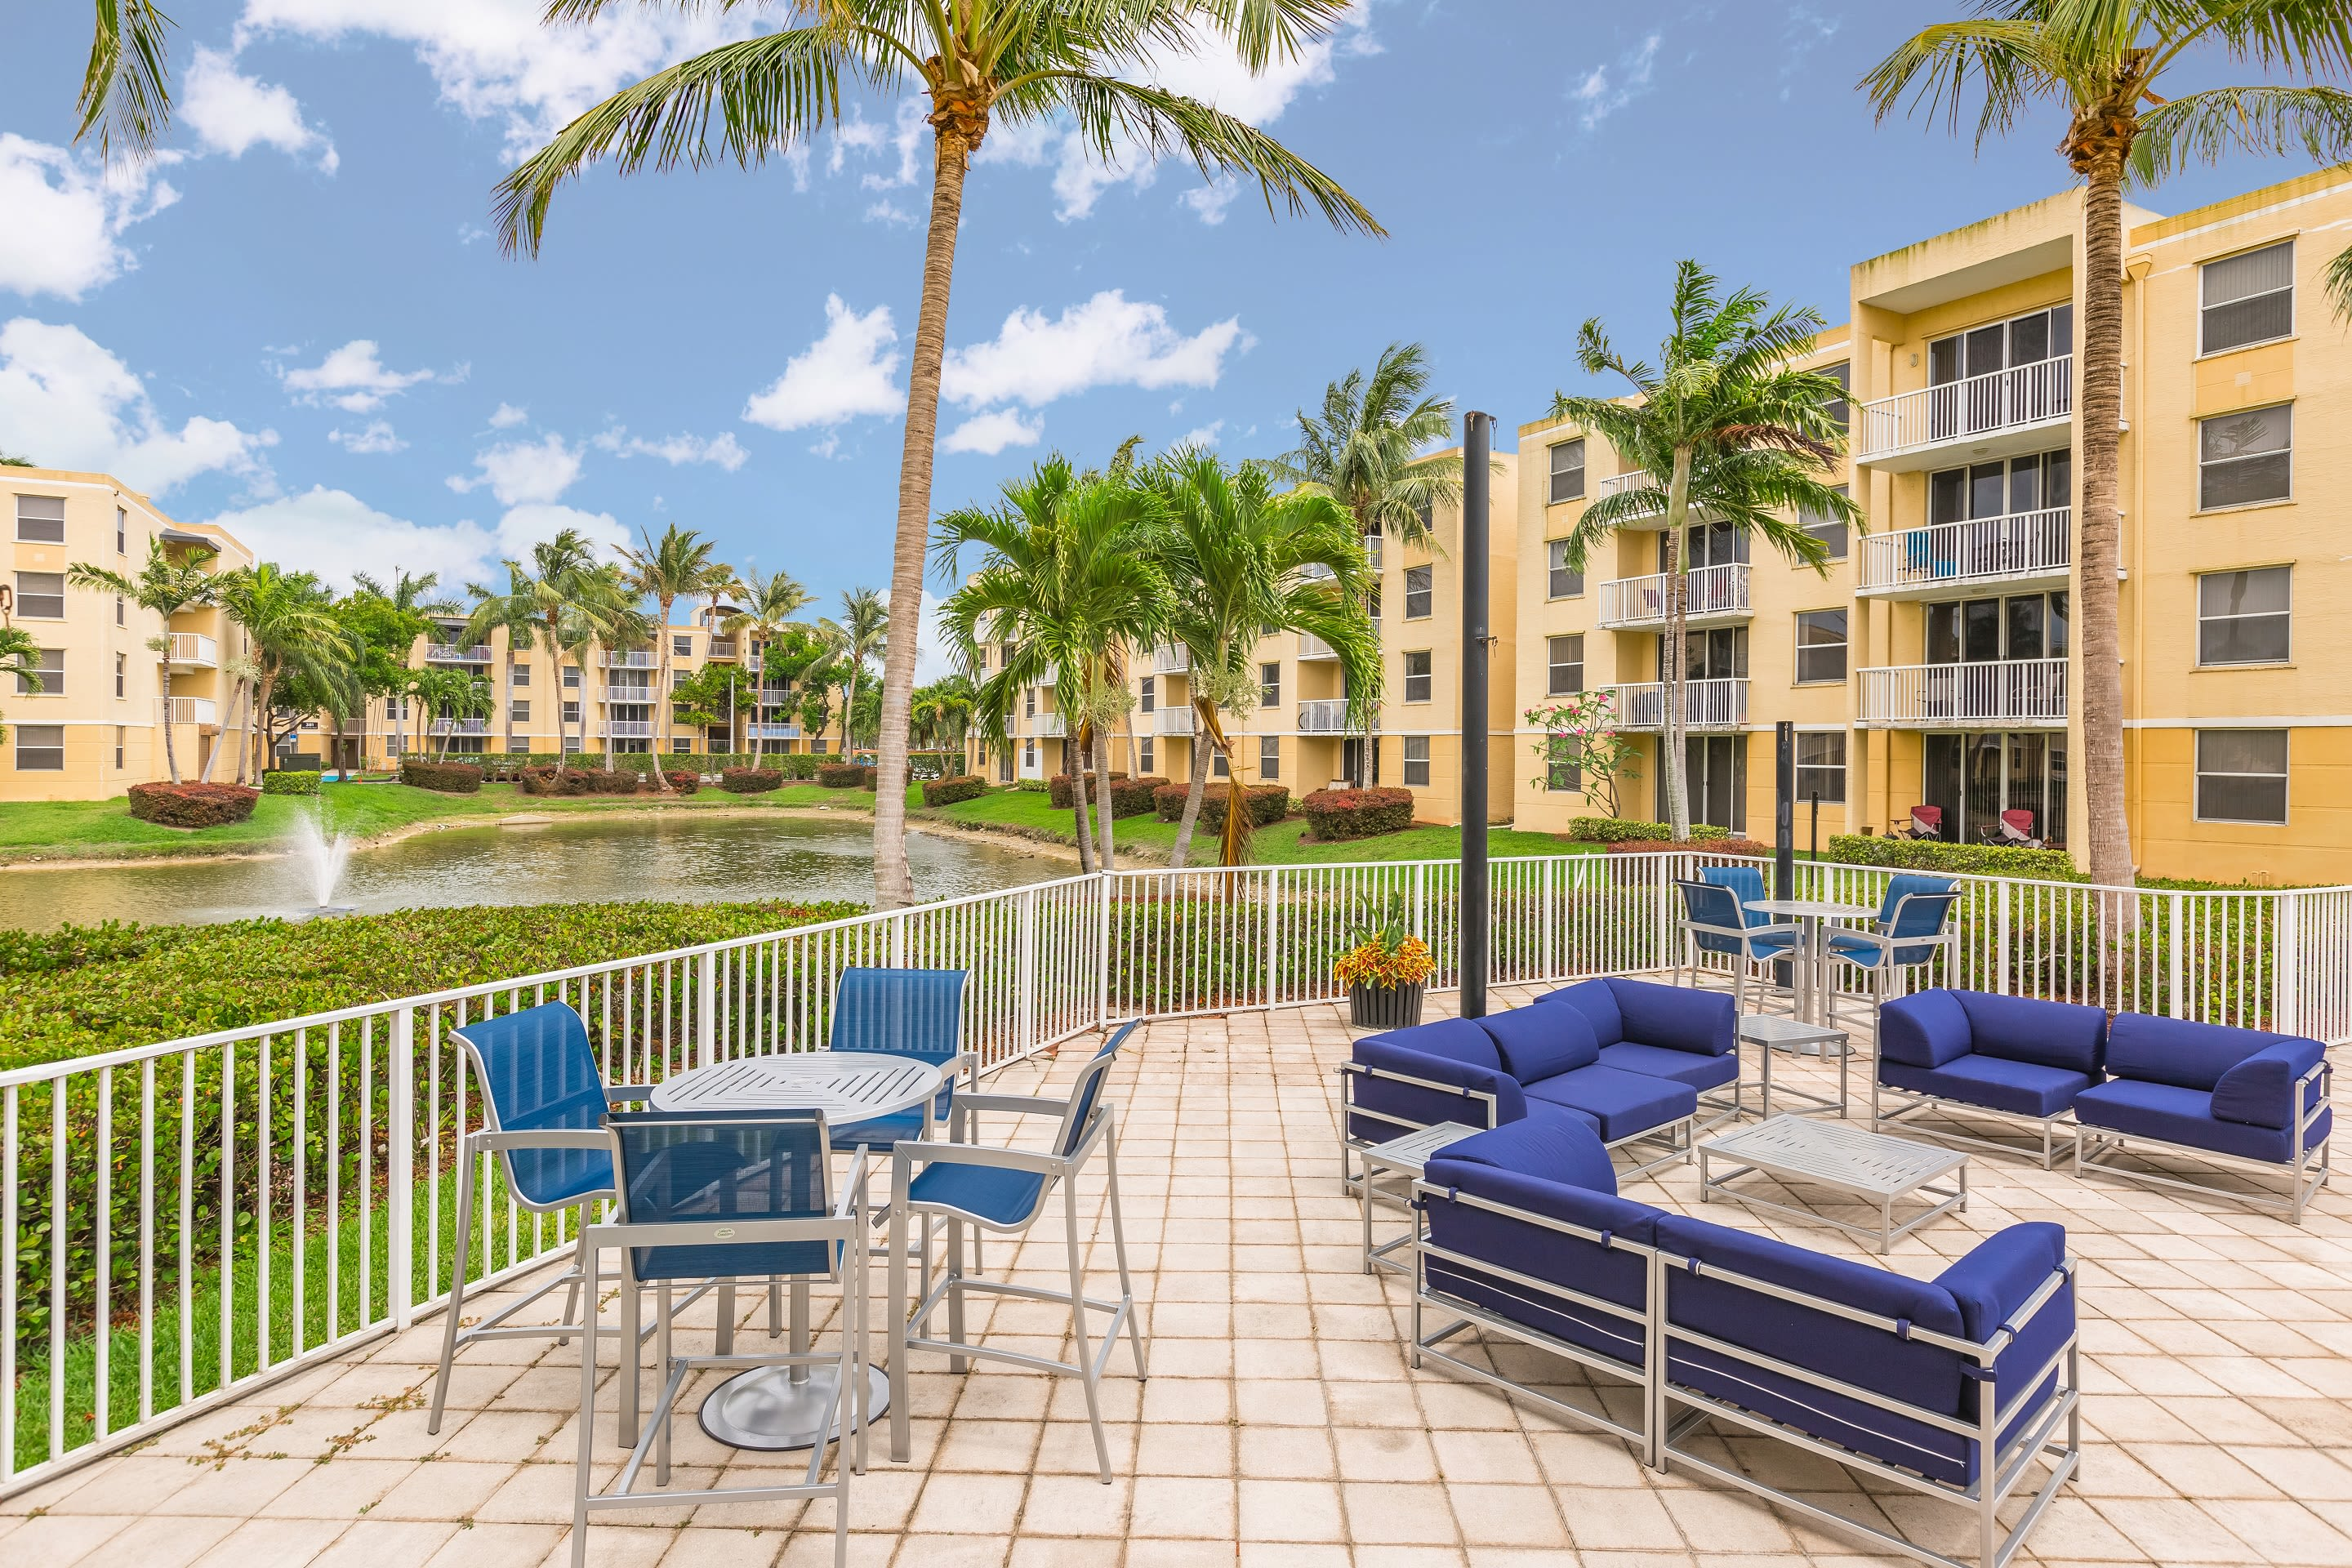 Luxurious amenities at Beach Walk at Sheridan include an amazing pool